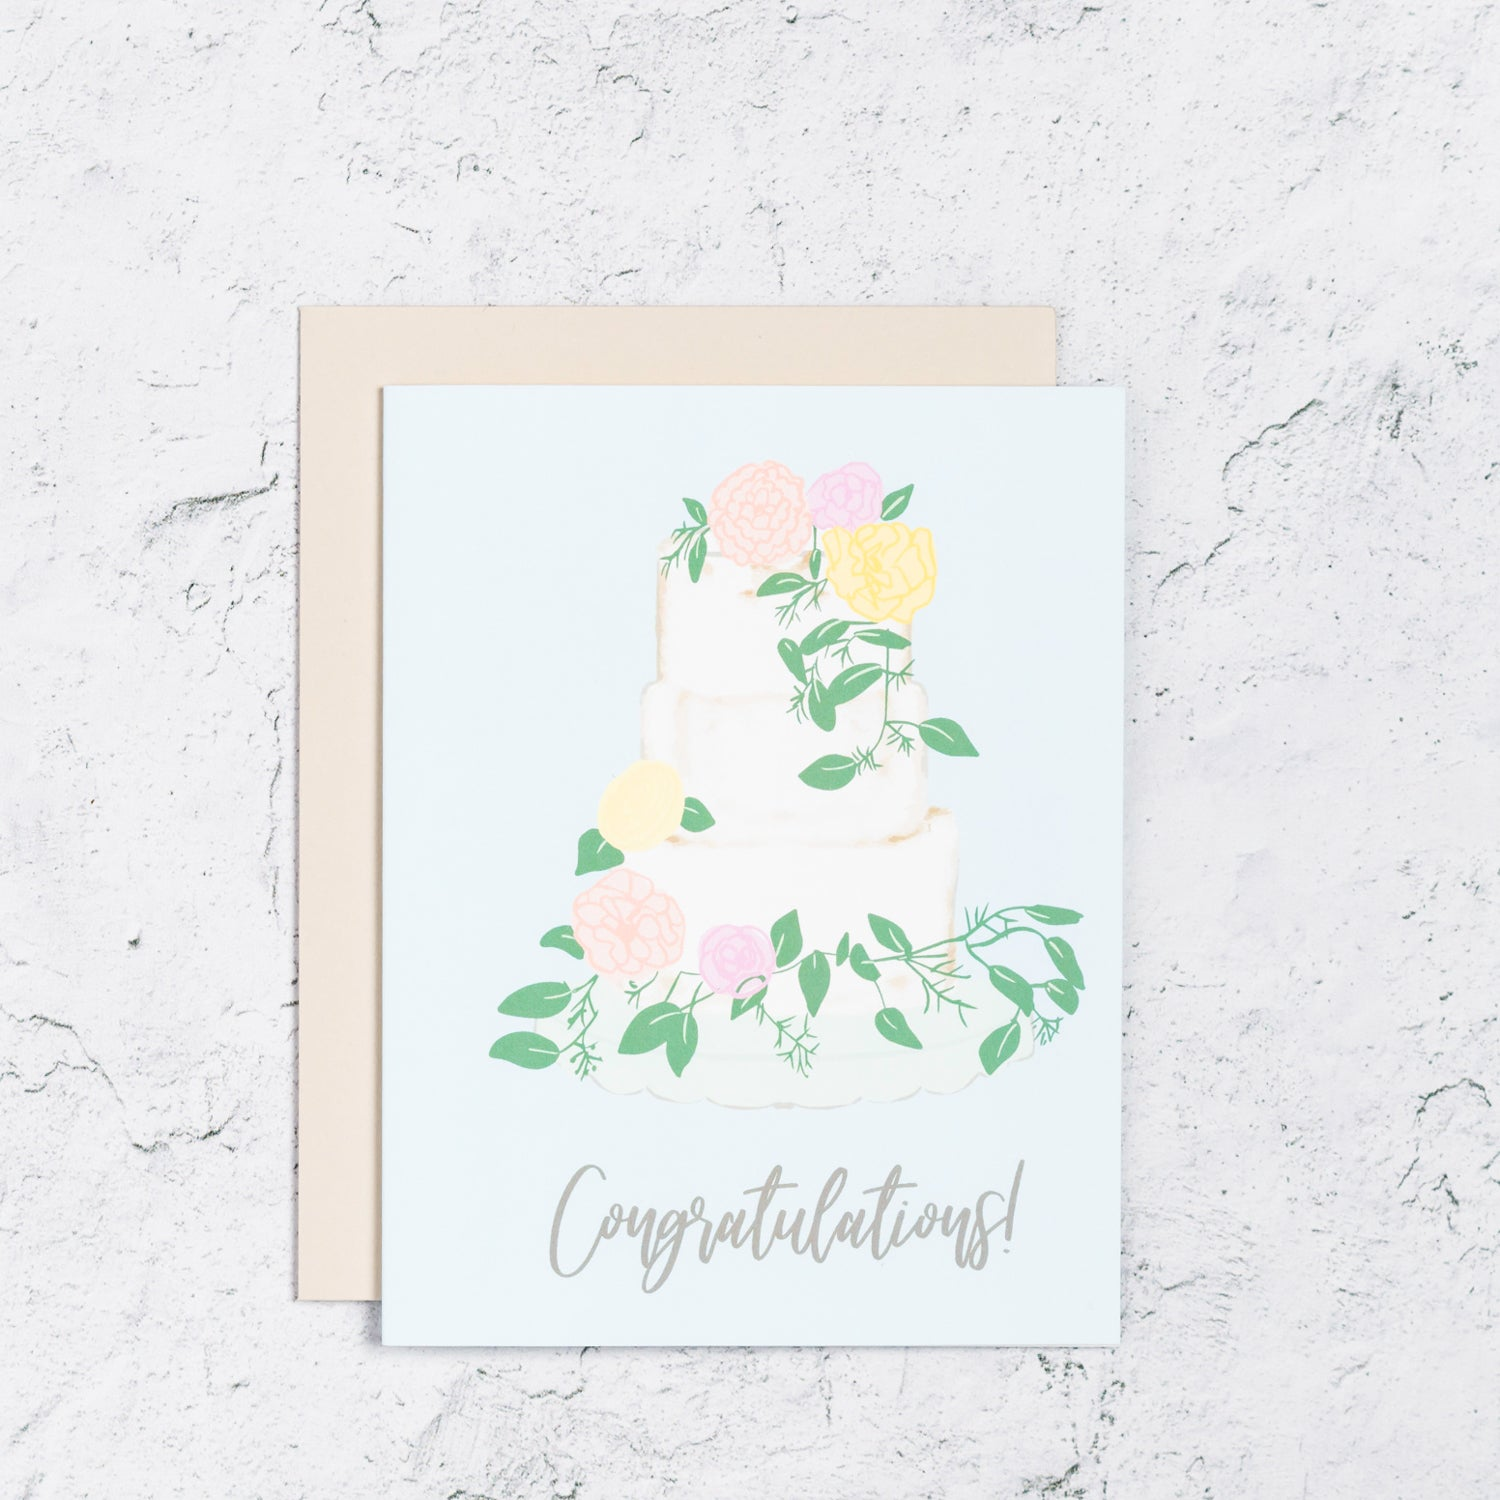 Congratulations Card With Wedding Cake